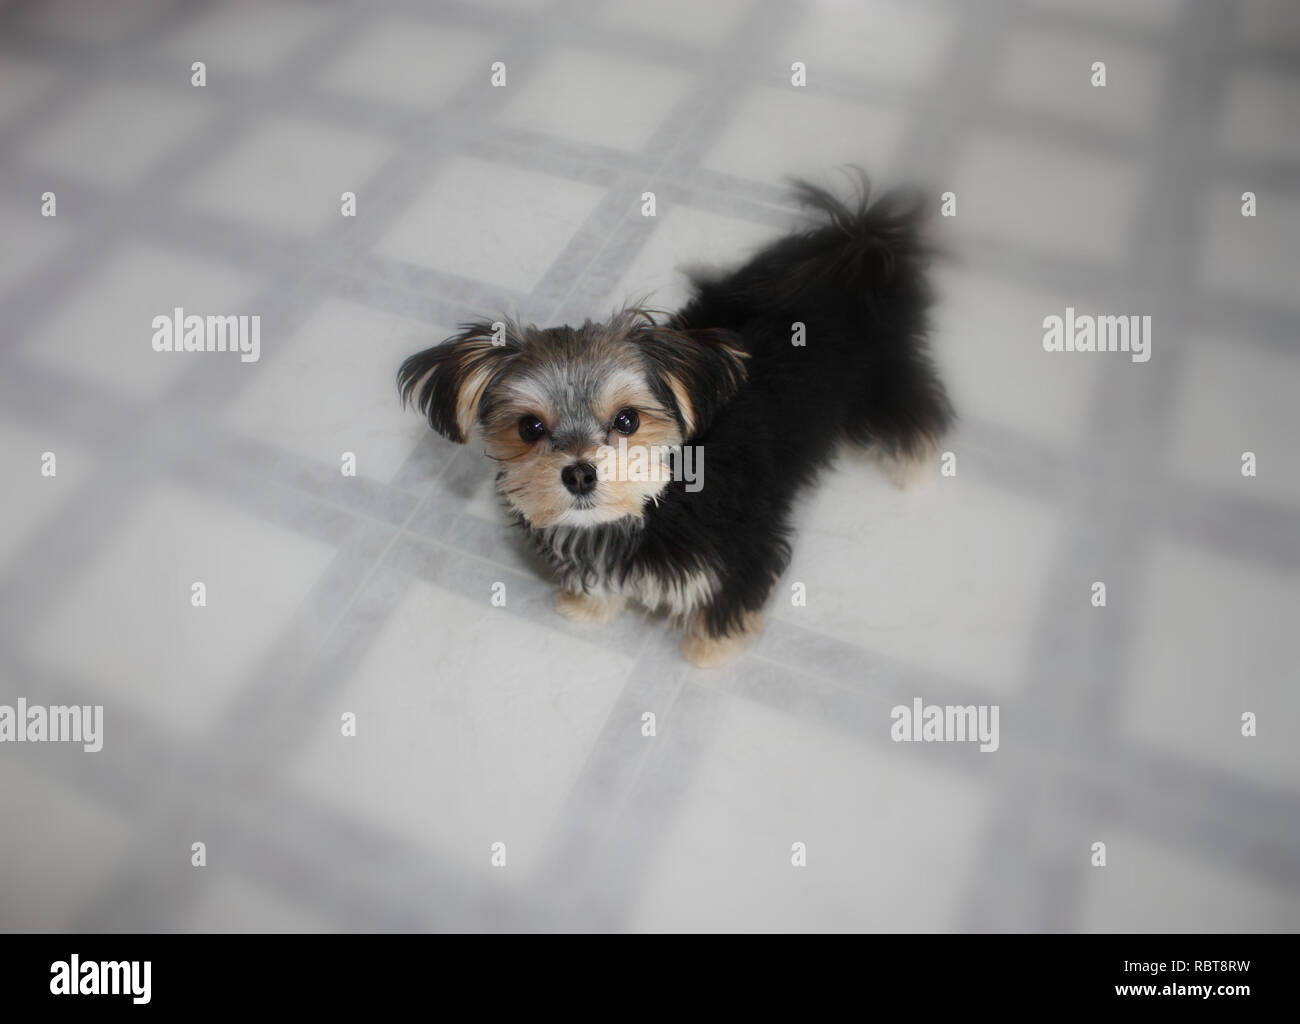 Close up, soft foucs, of a Morkie, Maltese/Yorkshire Terrier mix puppy - Stock Image